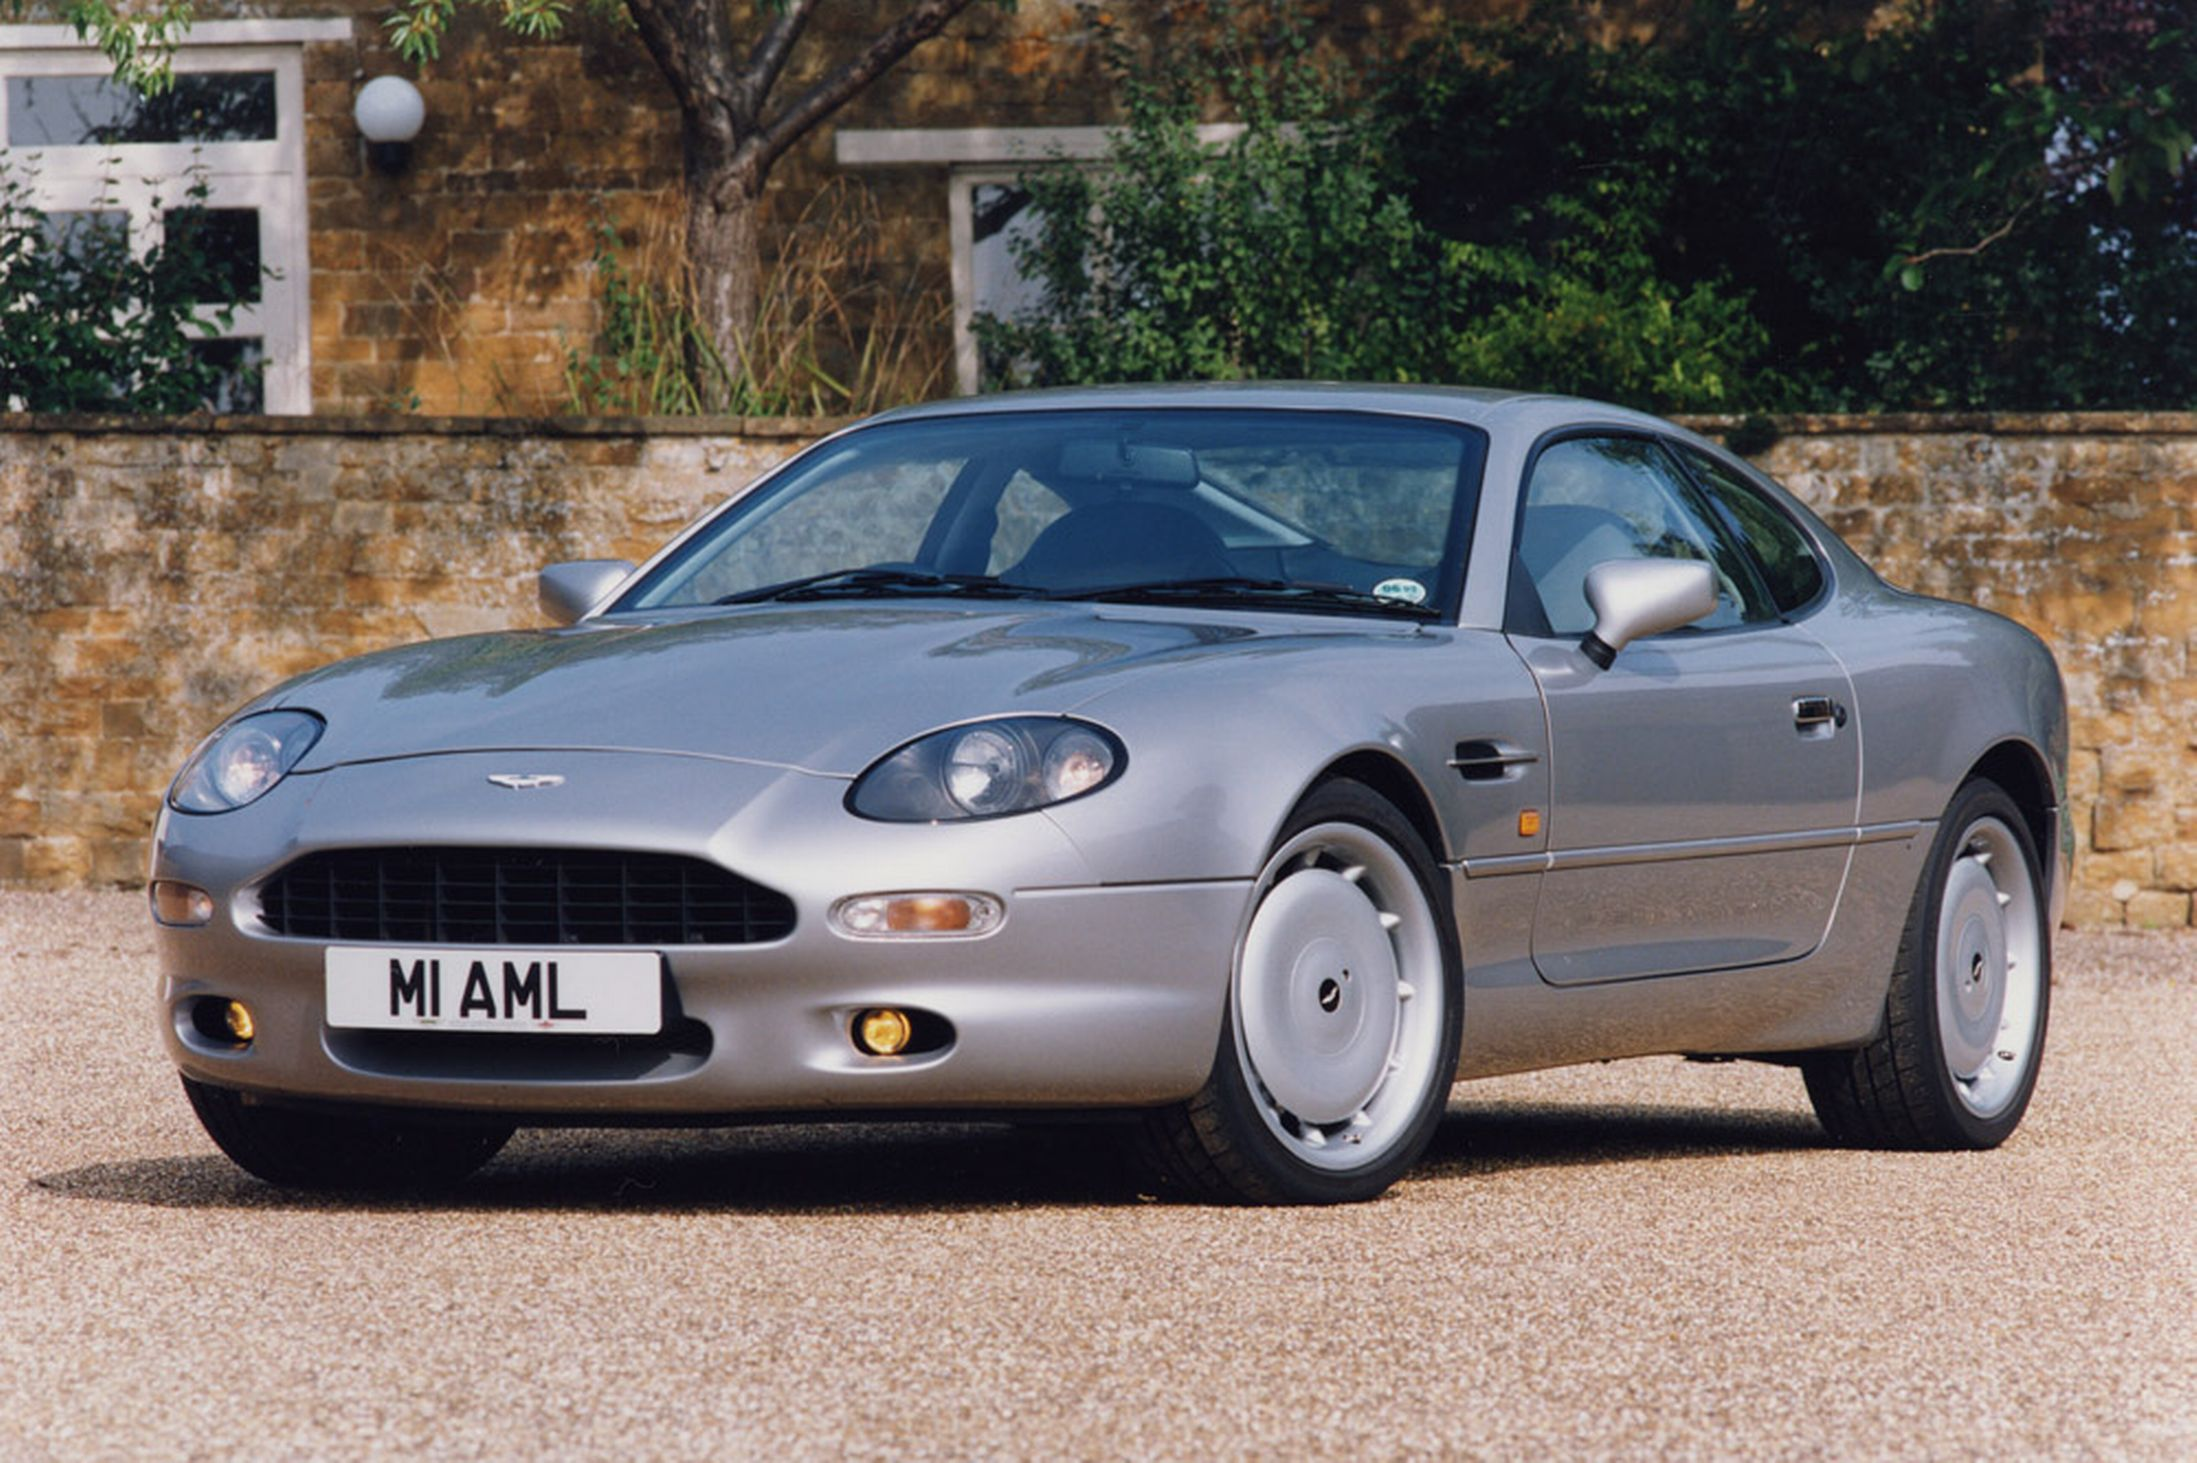 aston martin db7 pictures #2